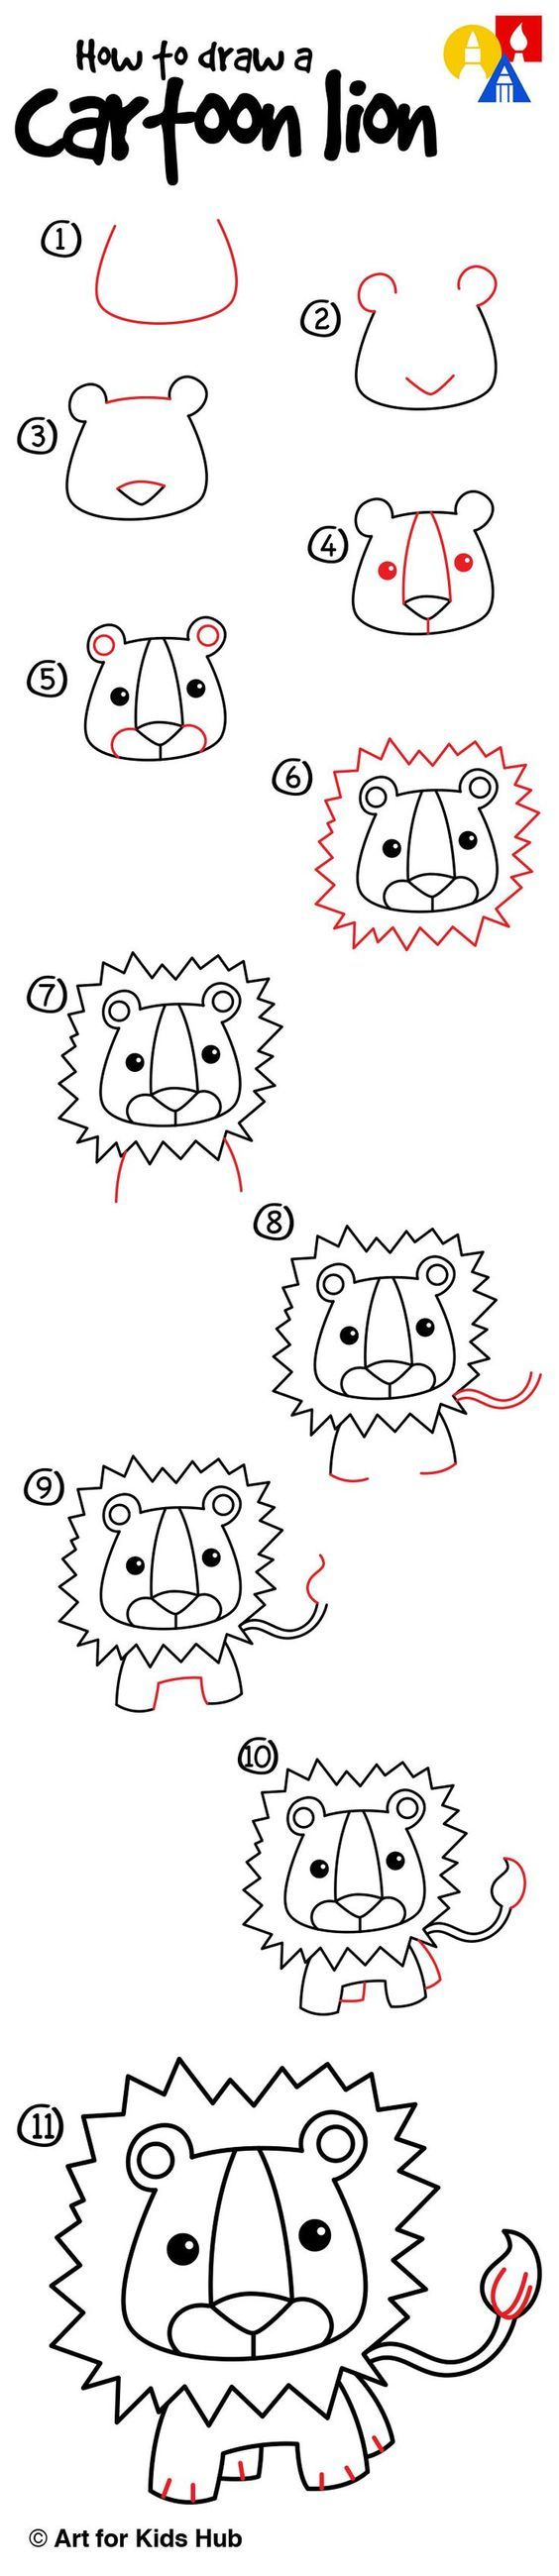 Learn how to draw a cartoon lion!: